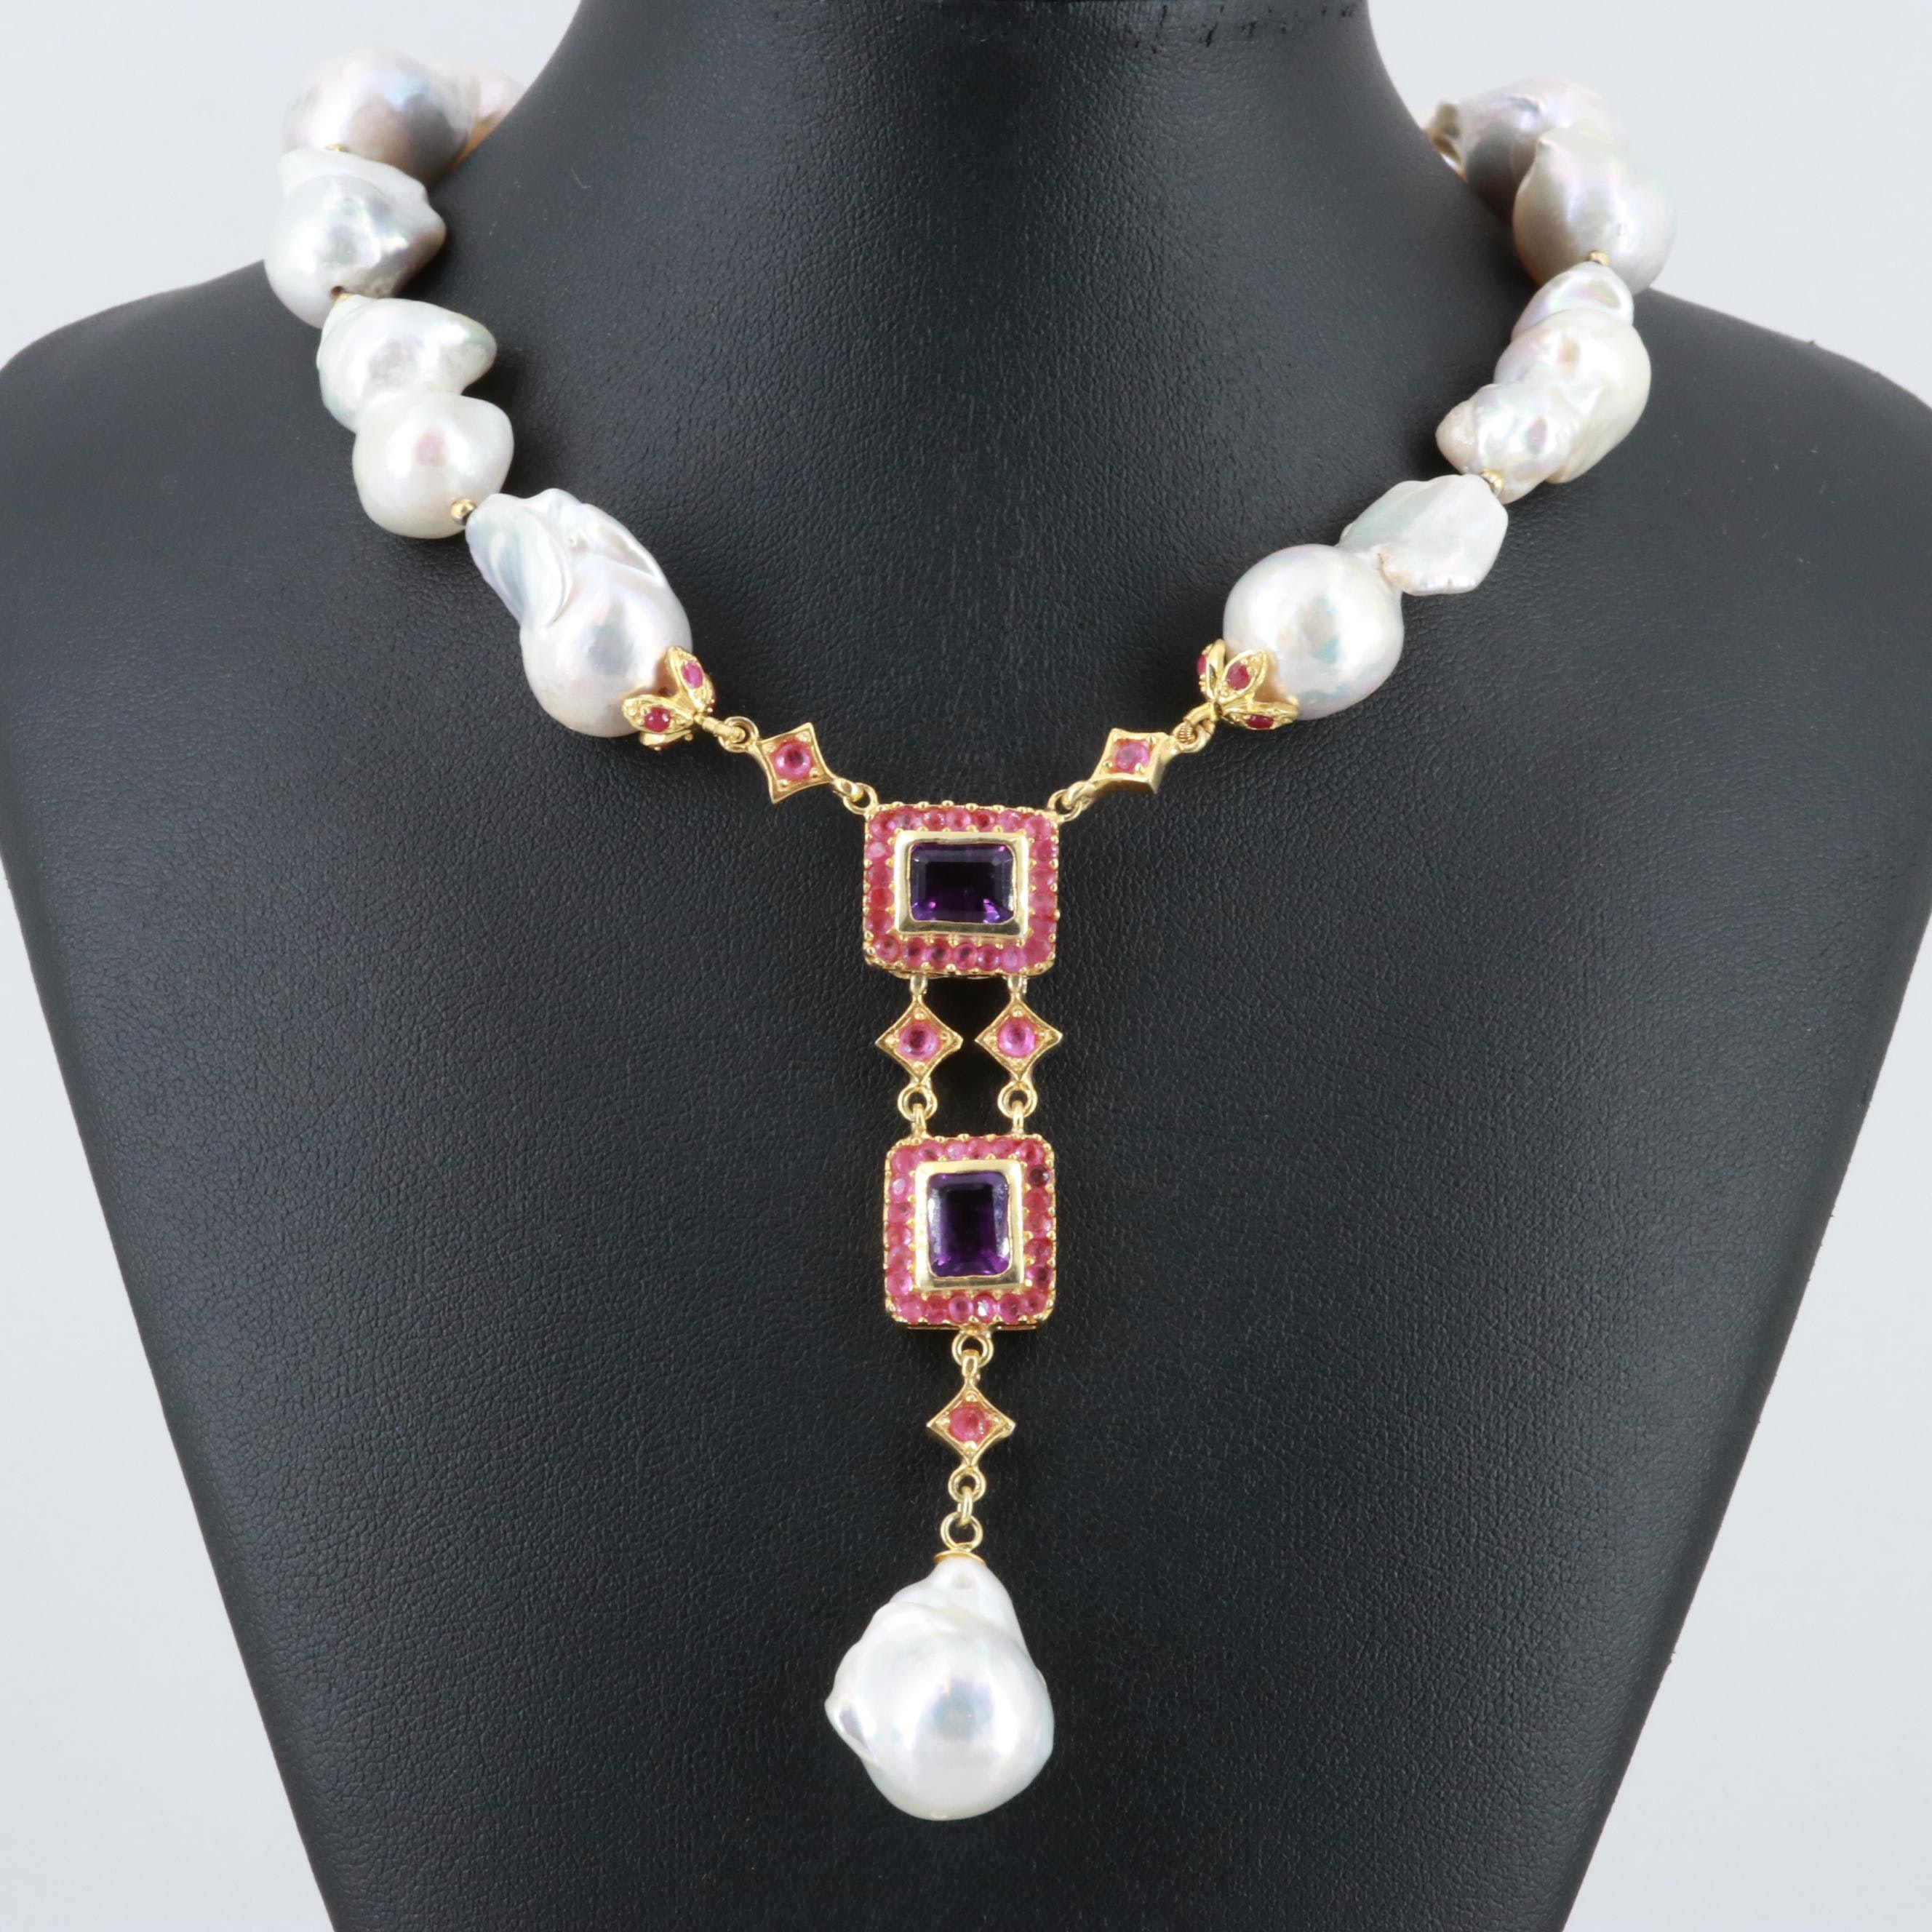 Gold Wash on Sterling Silver Cultured Pearl, Amethyst, and Ruby Necklace